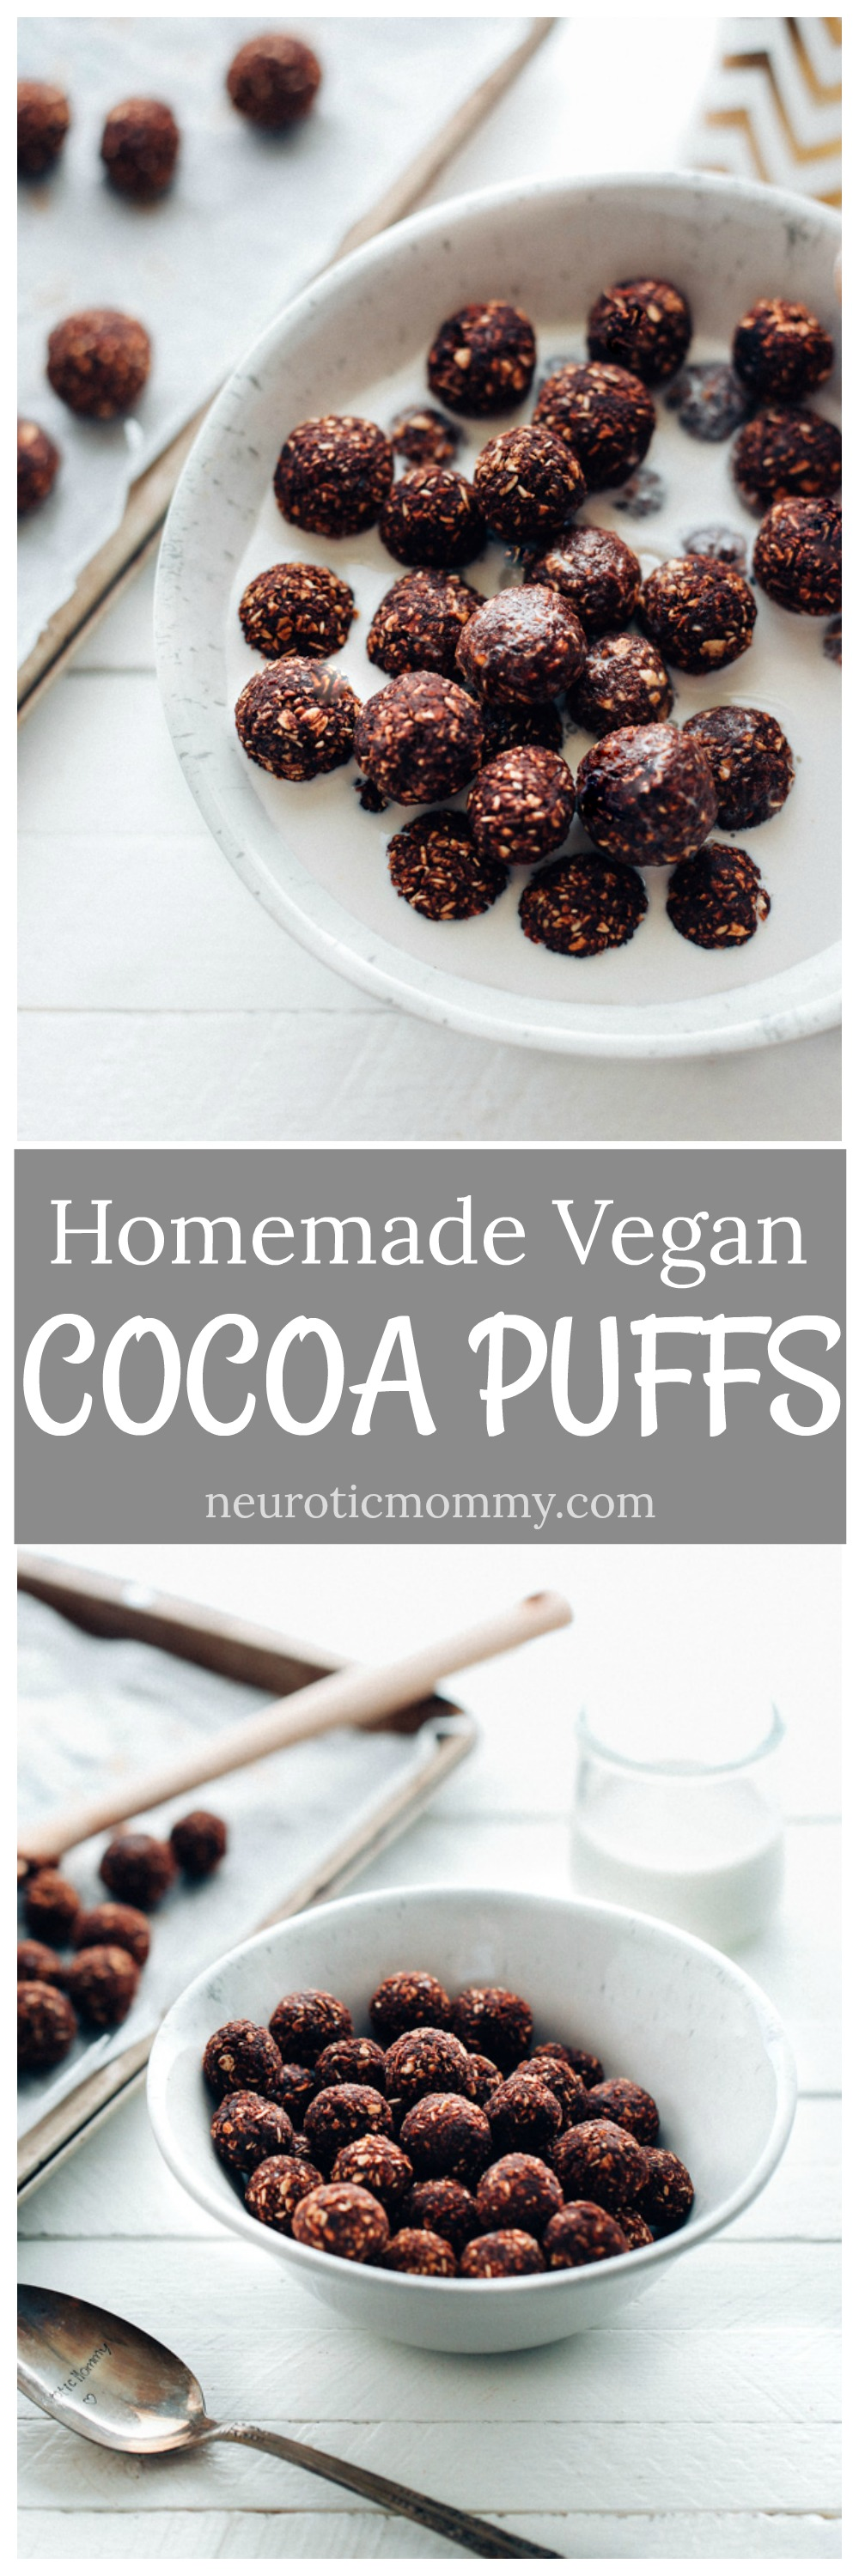 Homemade vegan cocoa puffs neuroticmommy homemade vegan cocoa puffs 4 ingredient chocolatey cereal thats naturally sweetened and perfect for breakfast ccuart